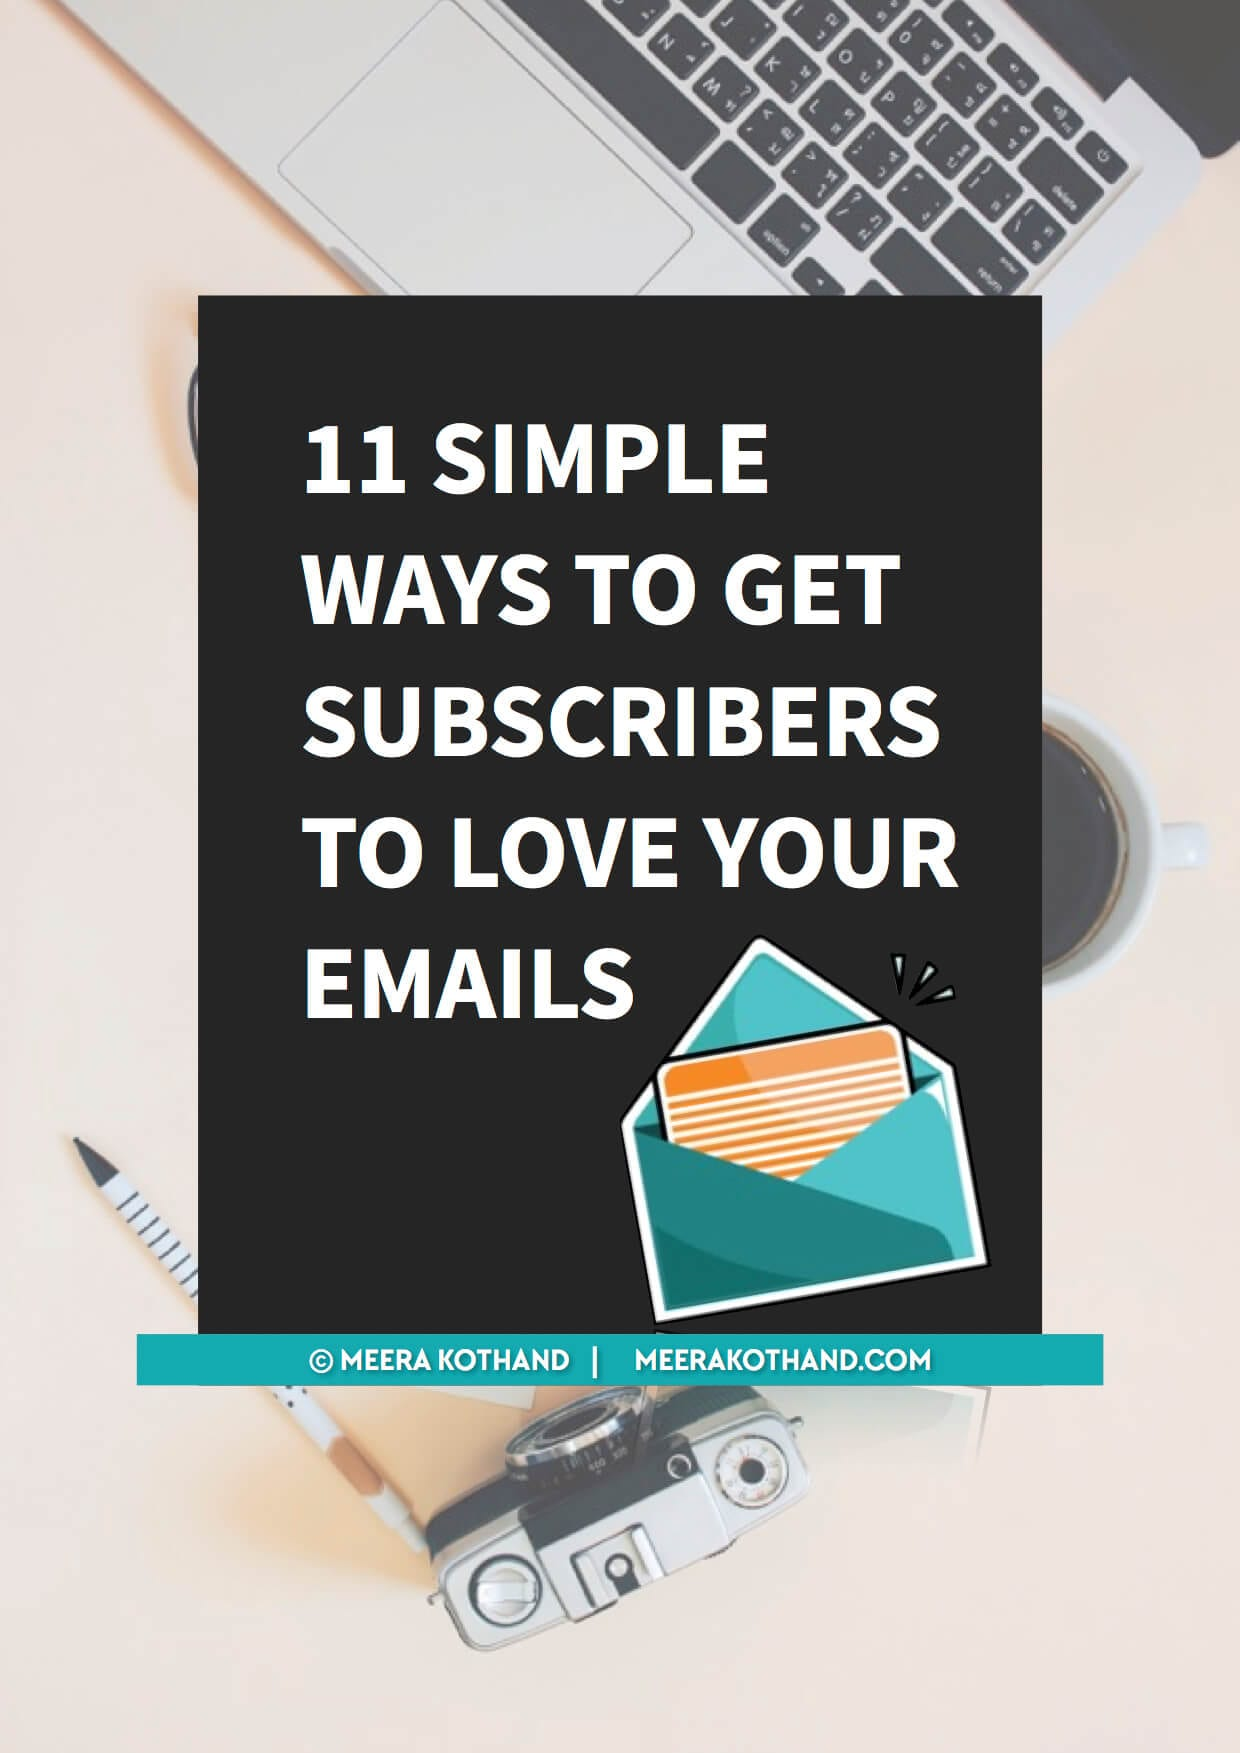 11 simple ways to get subscribers to love your emails